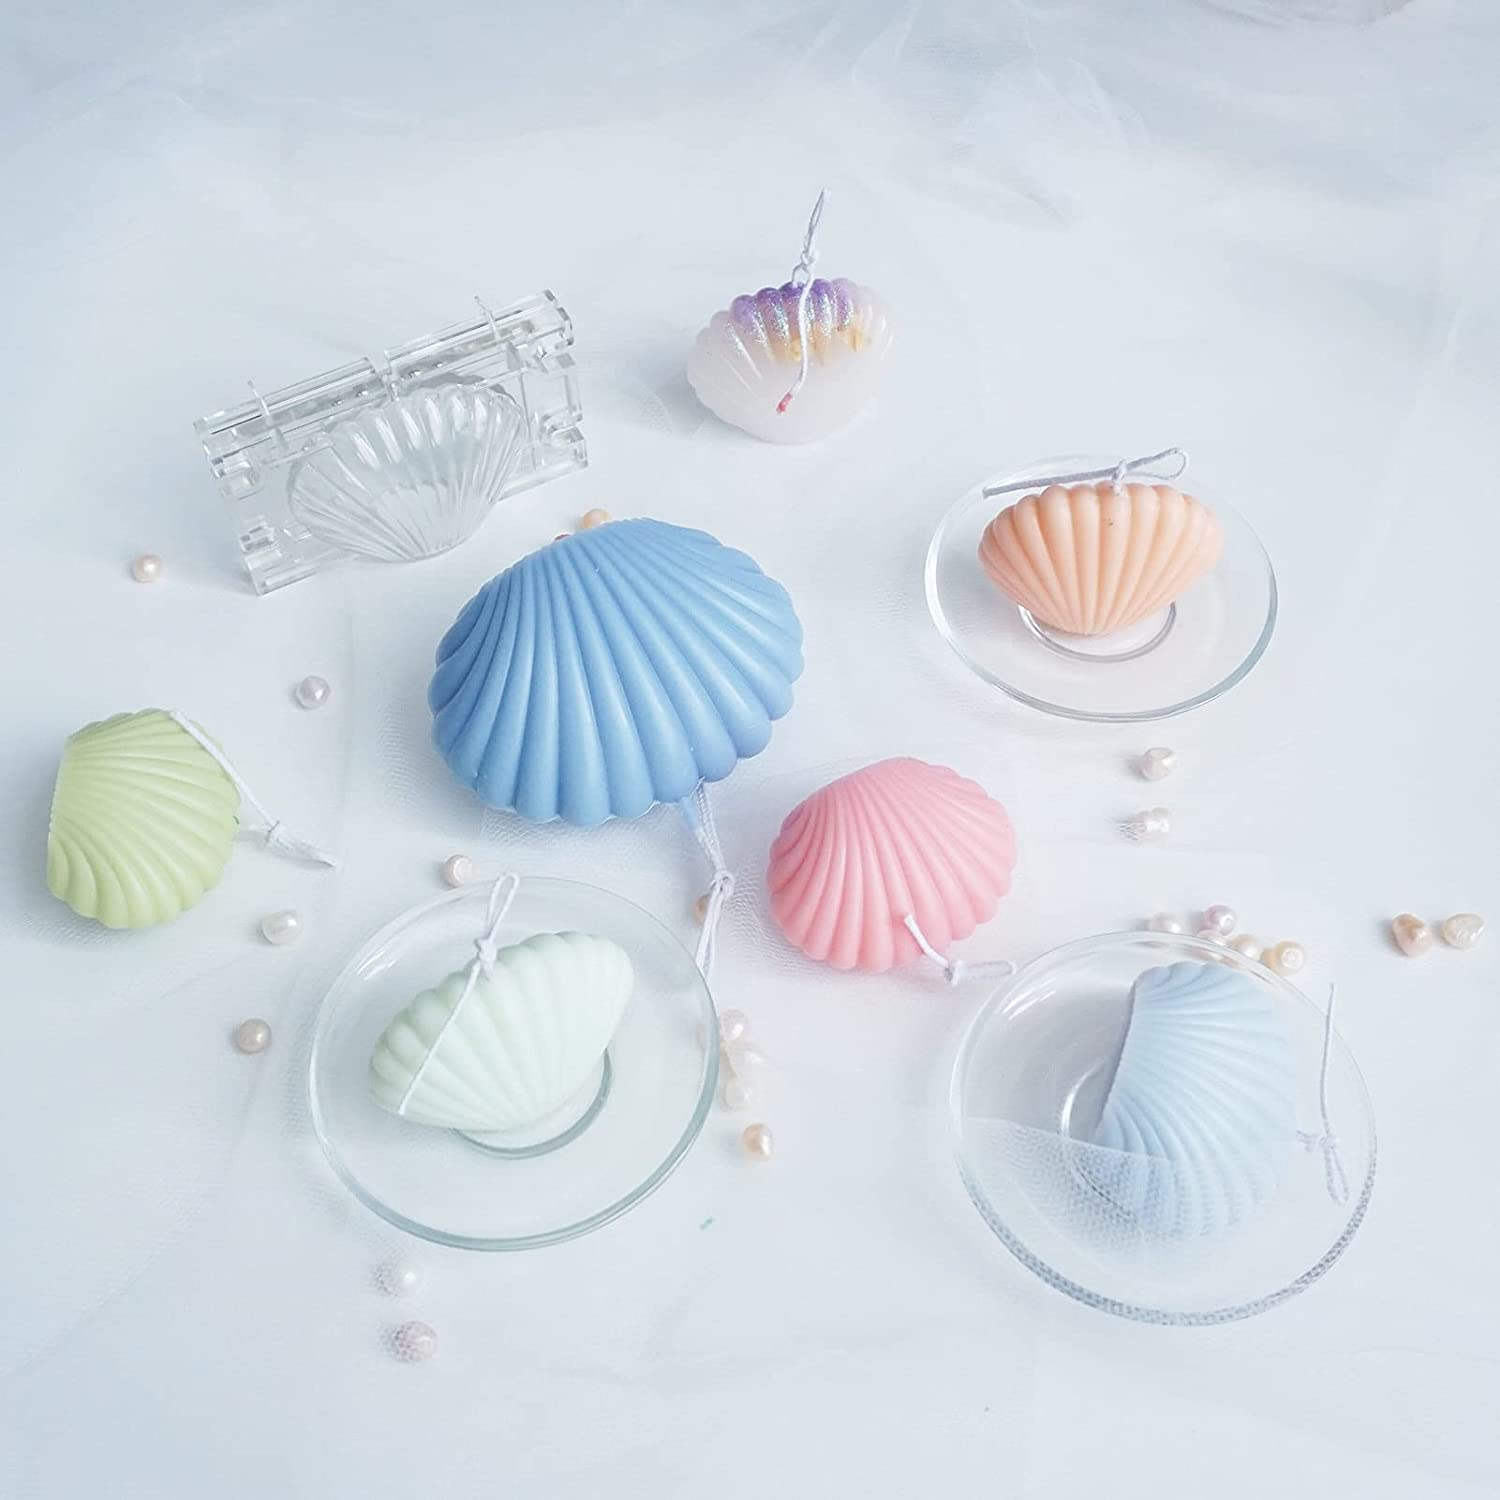 3D Silicone Candle Molds for Crafts New sales Handicrafts Financial sales sale Candl Making DIY